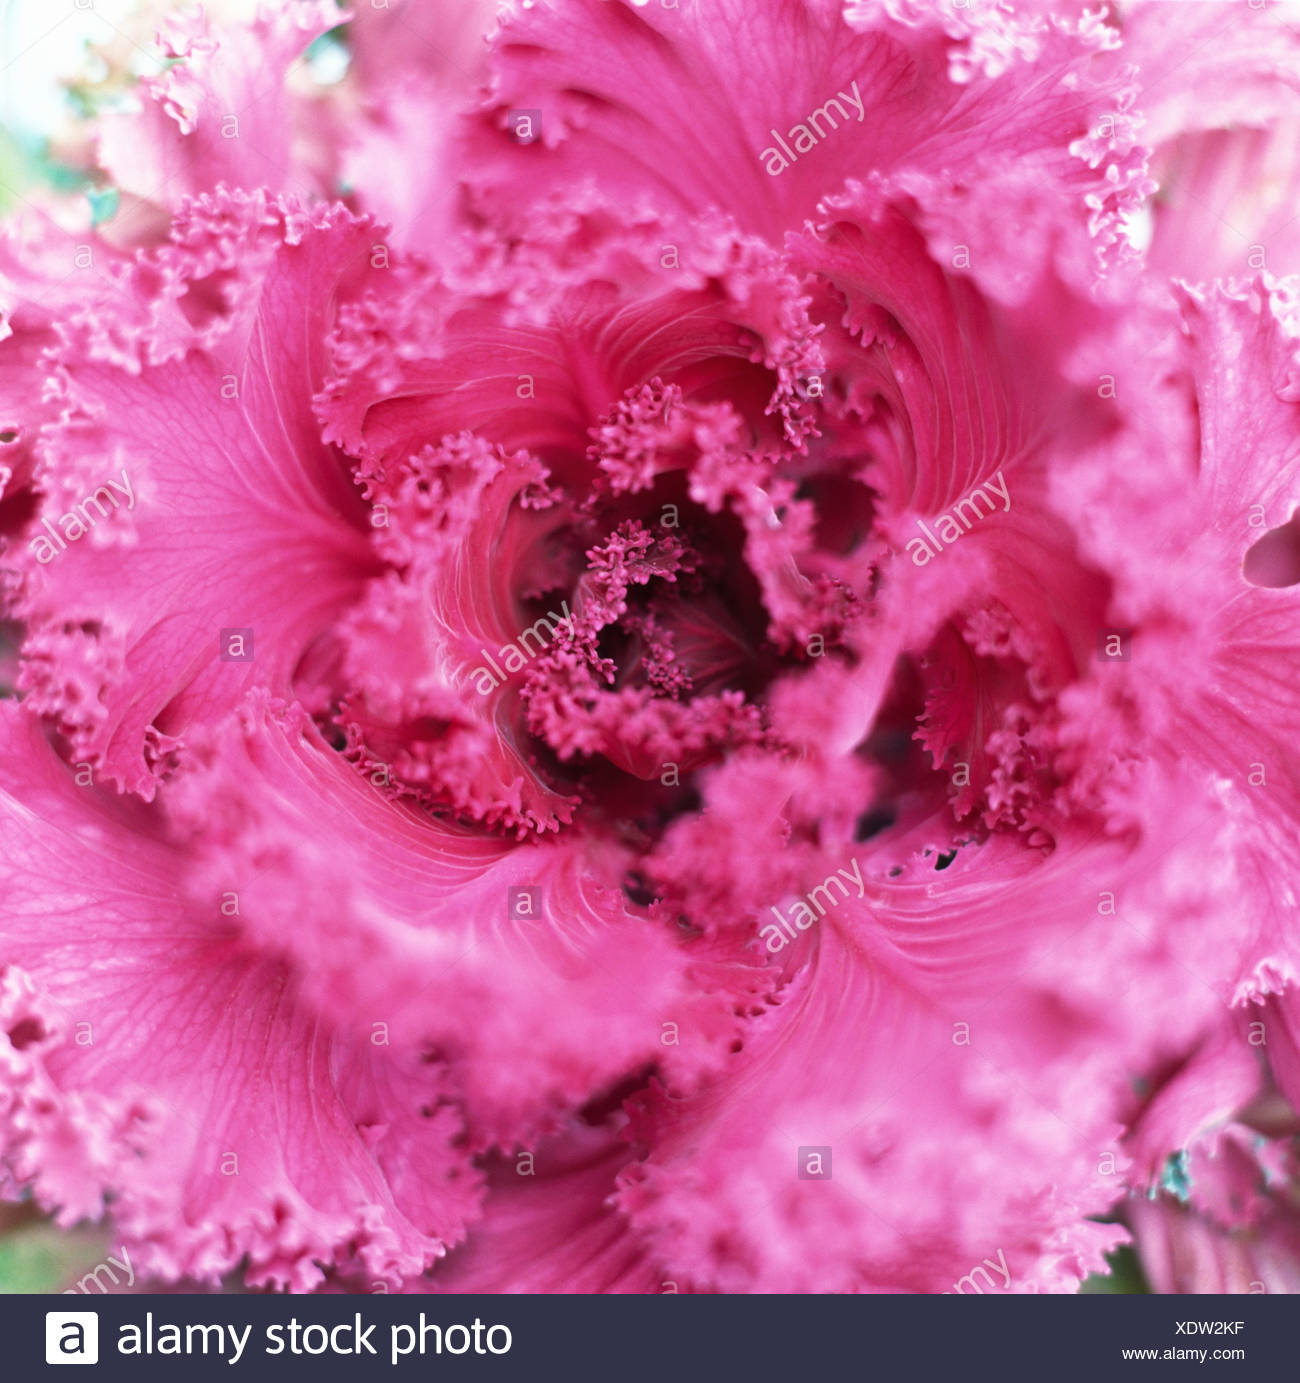 Kale floraison rouge close-up. Banque D'Images